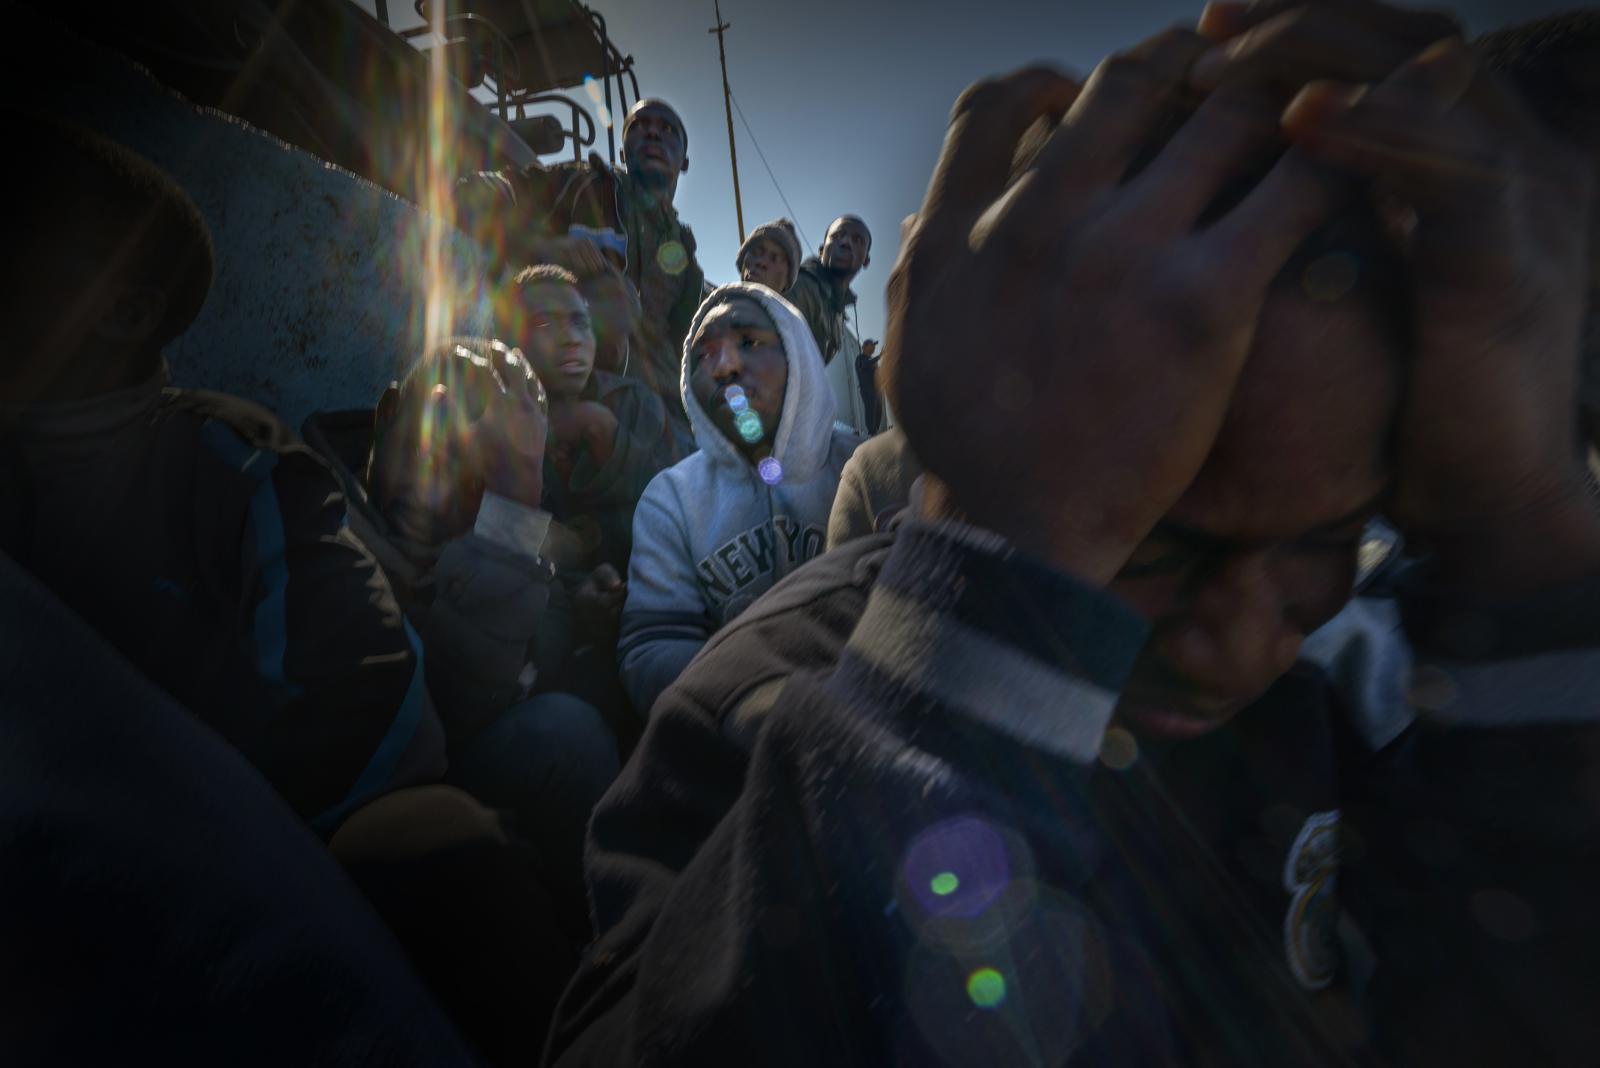 Intercepted by the Libyan Coast Guard just a few miles off the coast, refugees and migrants wait in the Port of Tripoli to be transferred to a detention centre; from there, they will be repatriated back to their home countries.